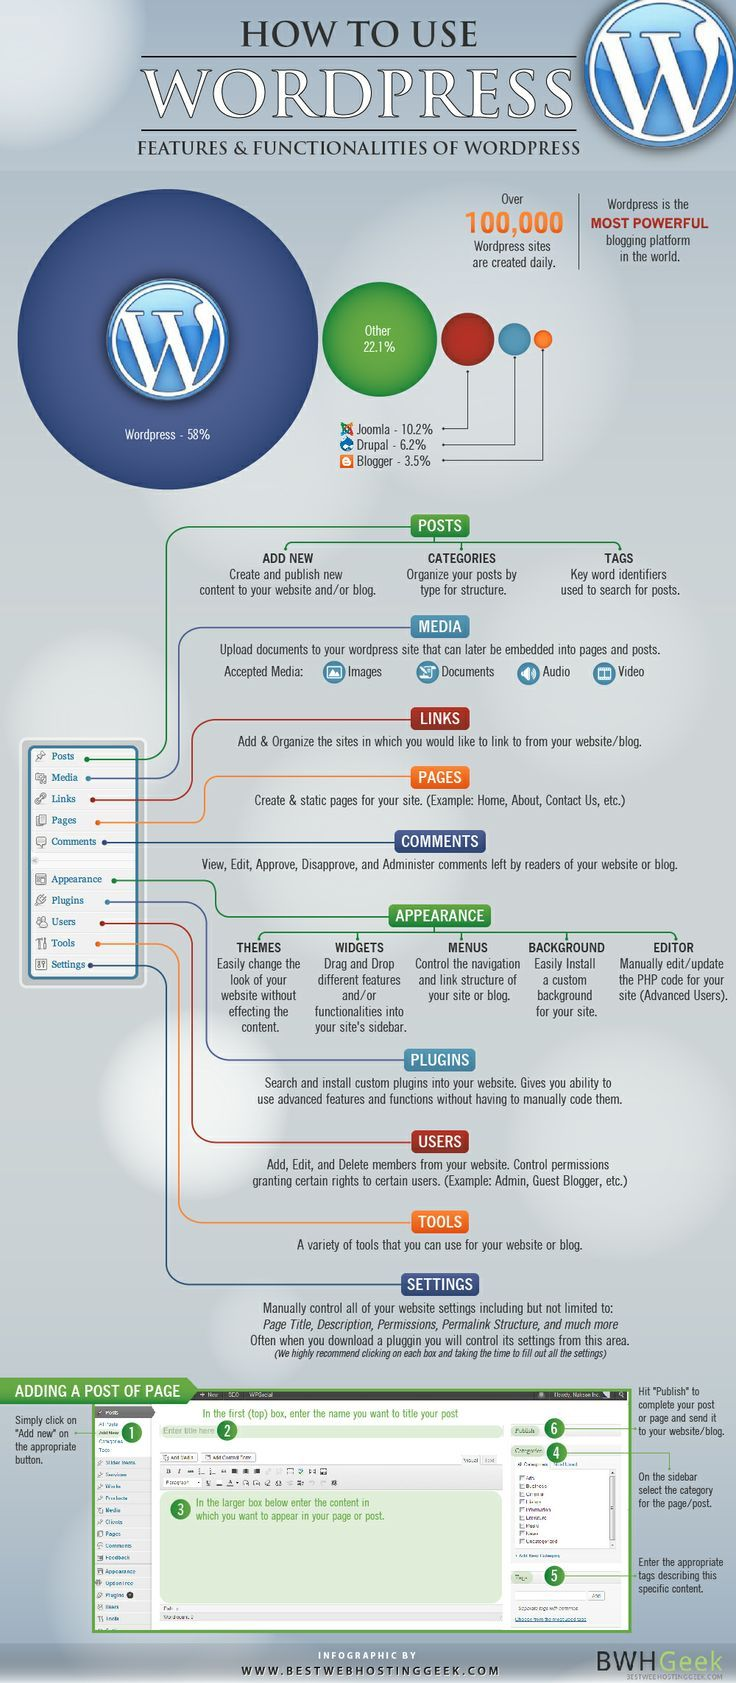 How to Use WordPress: Case Study [Infographic]